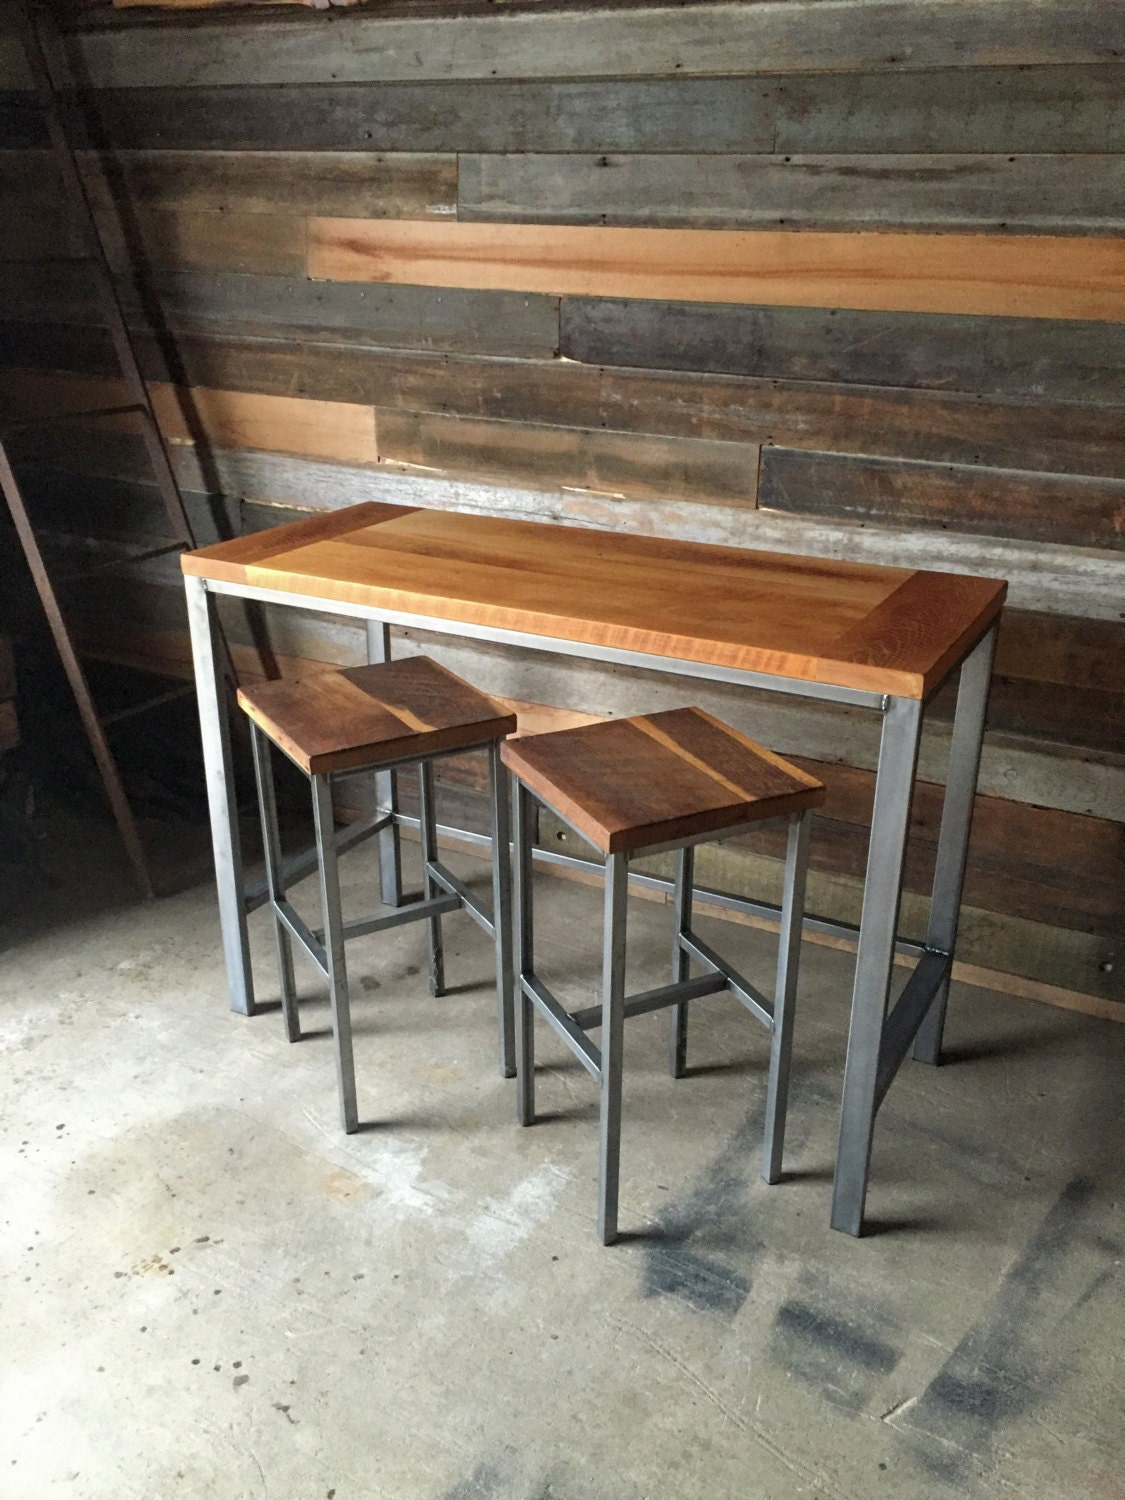 Reclaimed Wood Pub Table with Industrial Metal Base - Bar Height Table Etsy